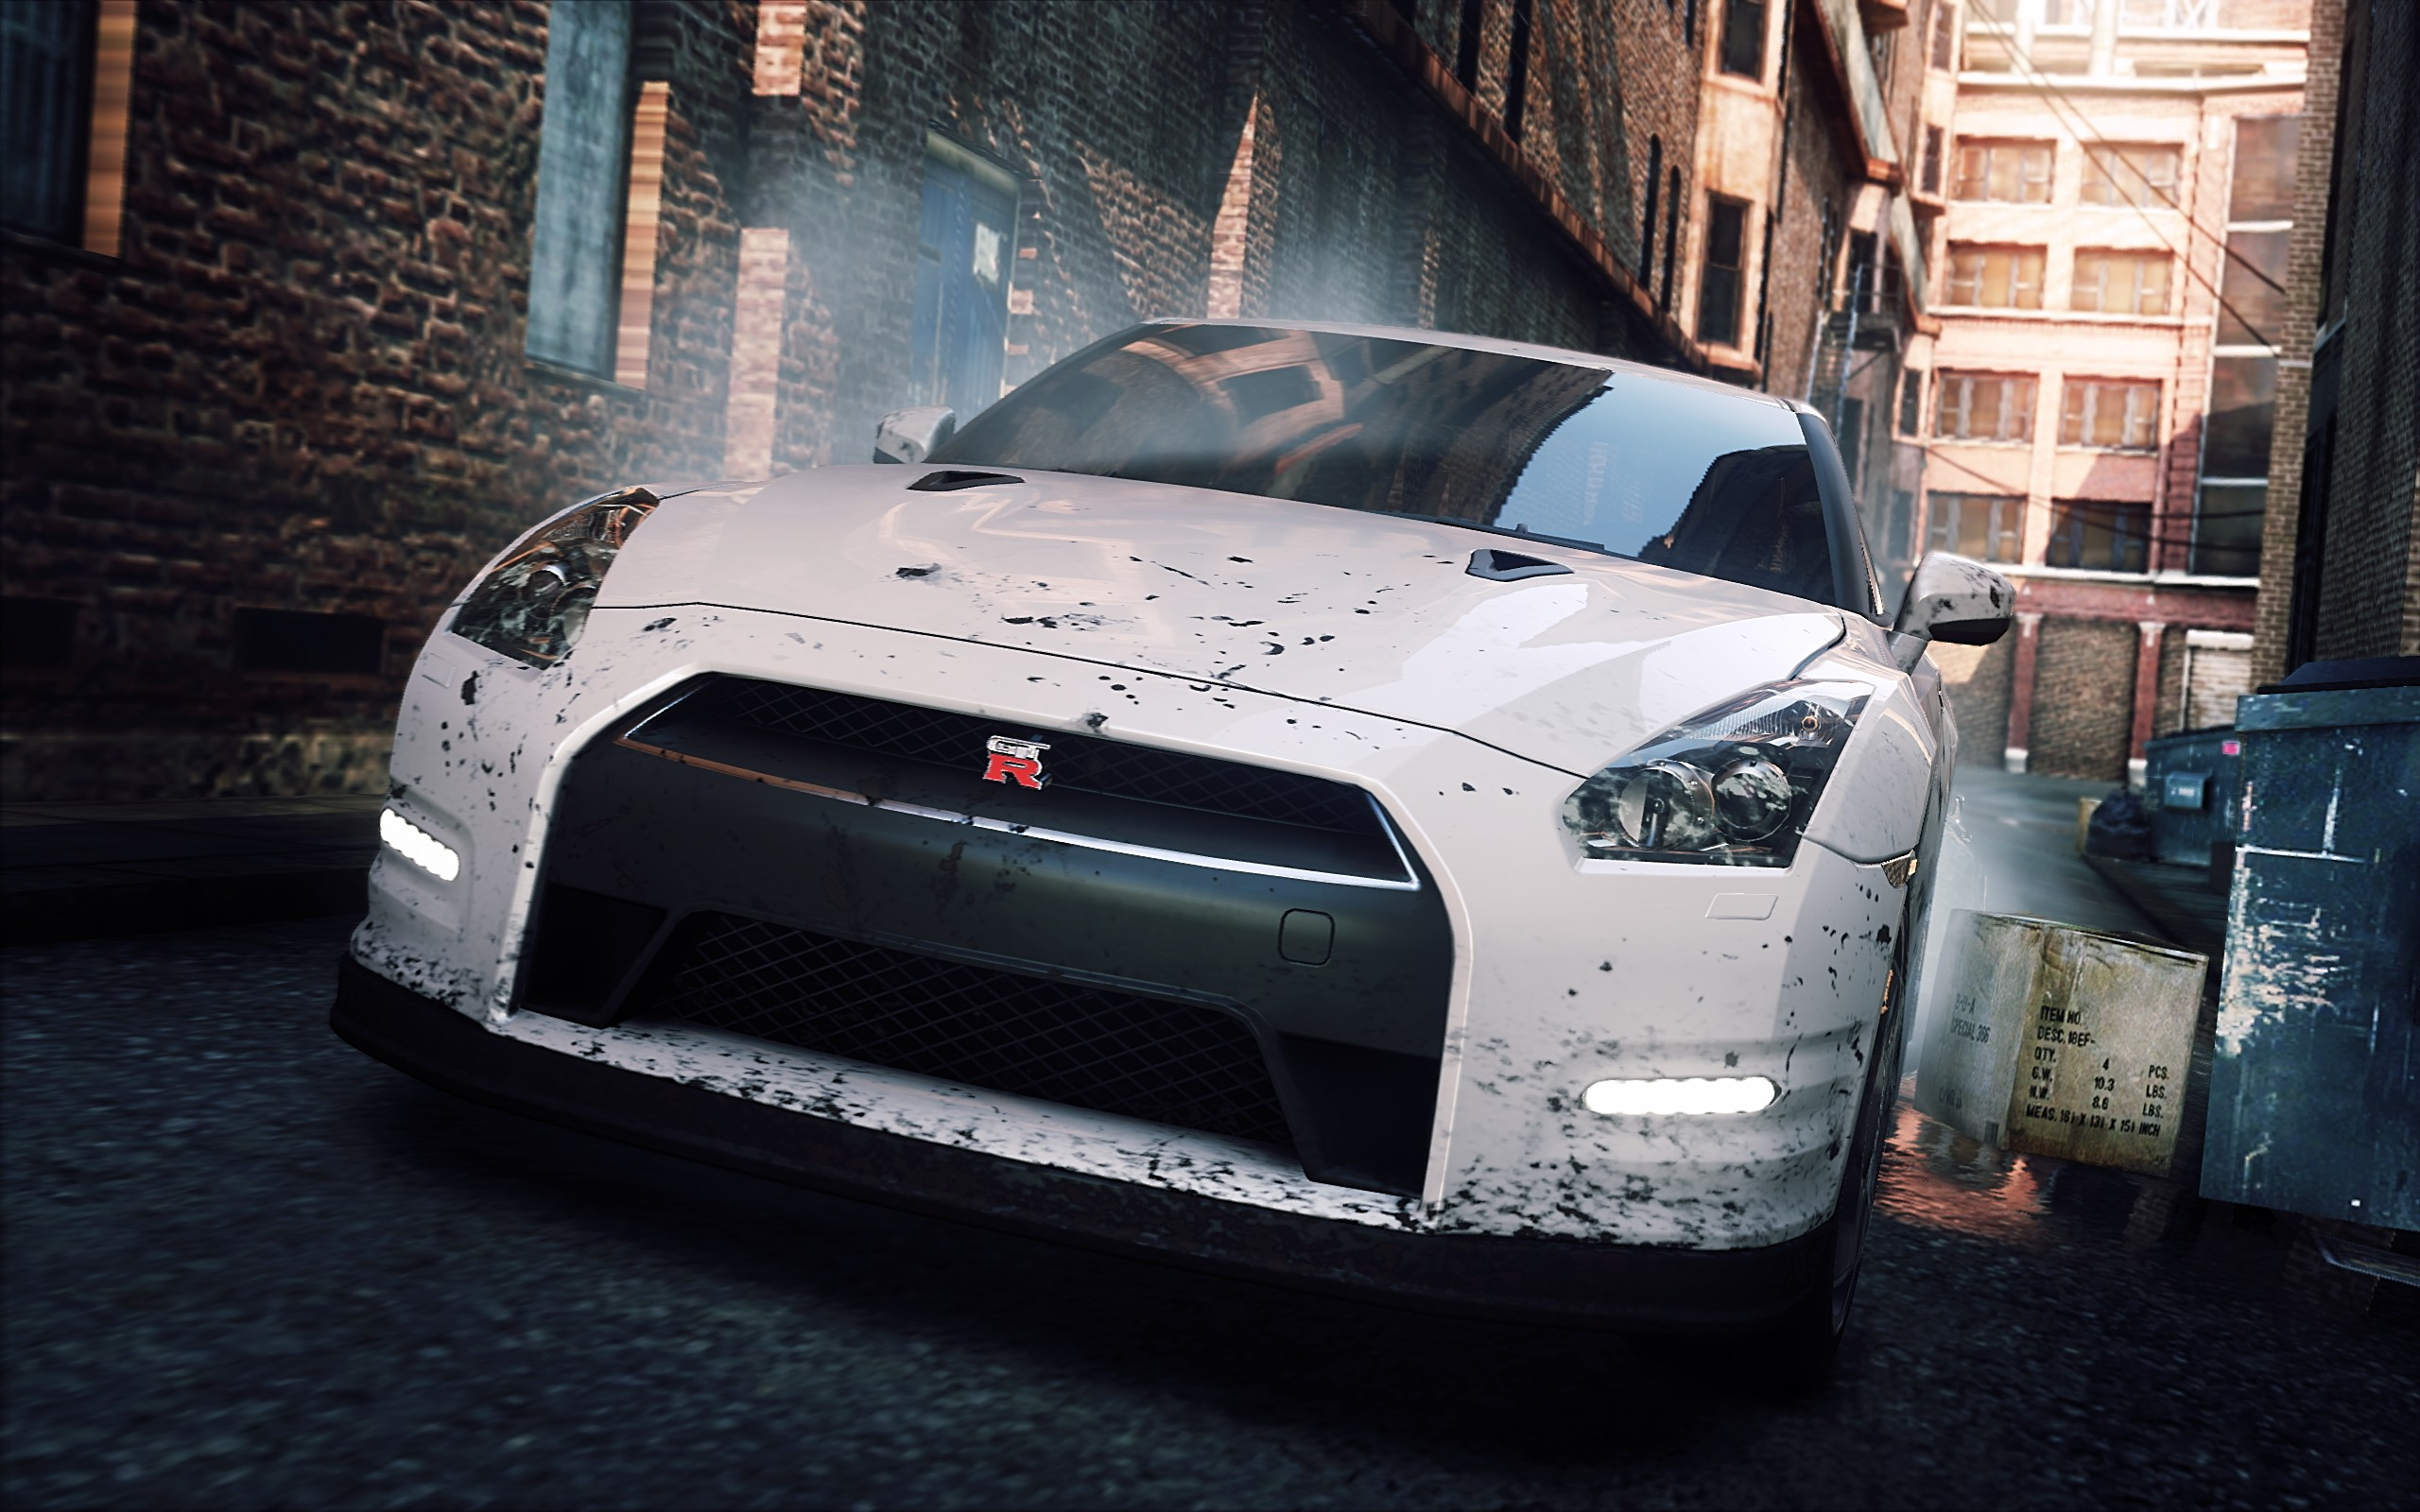 Nissan Gtr Need For Speed Hd Games 4k Wallpapers Images Backgrounds Photos And Pictures